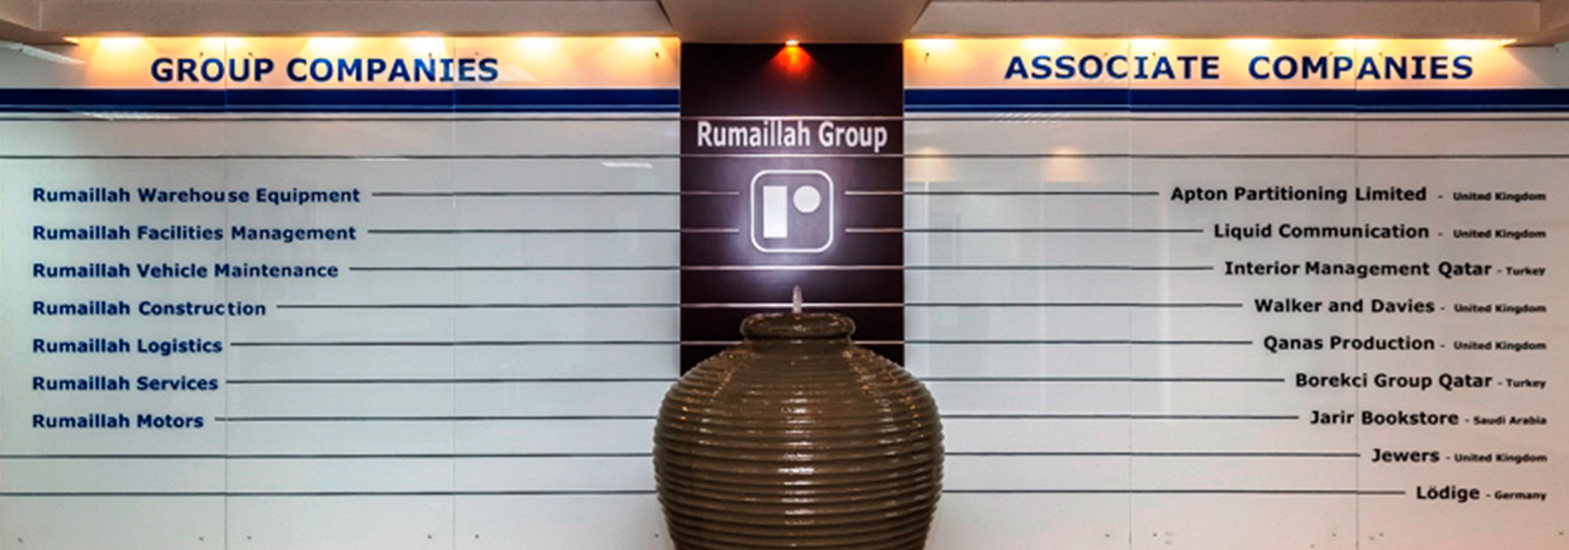 Rumaillah group blinds,carpets,interiors, wall coverings and services